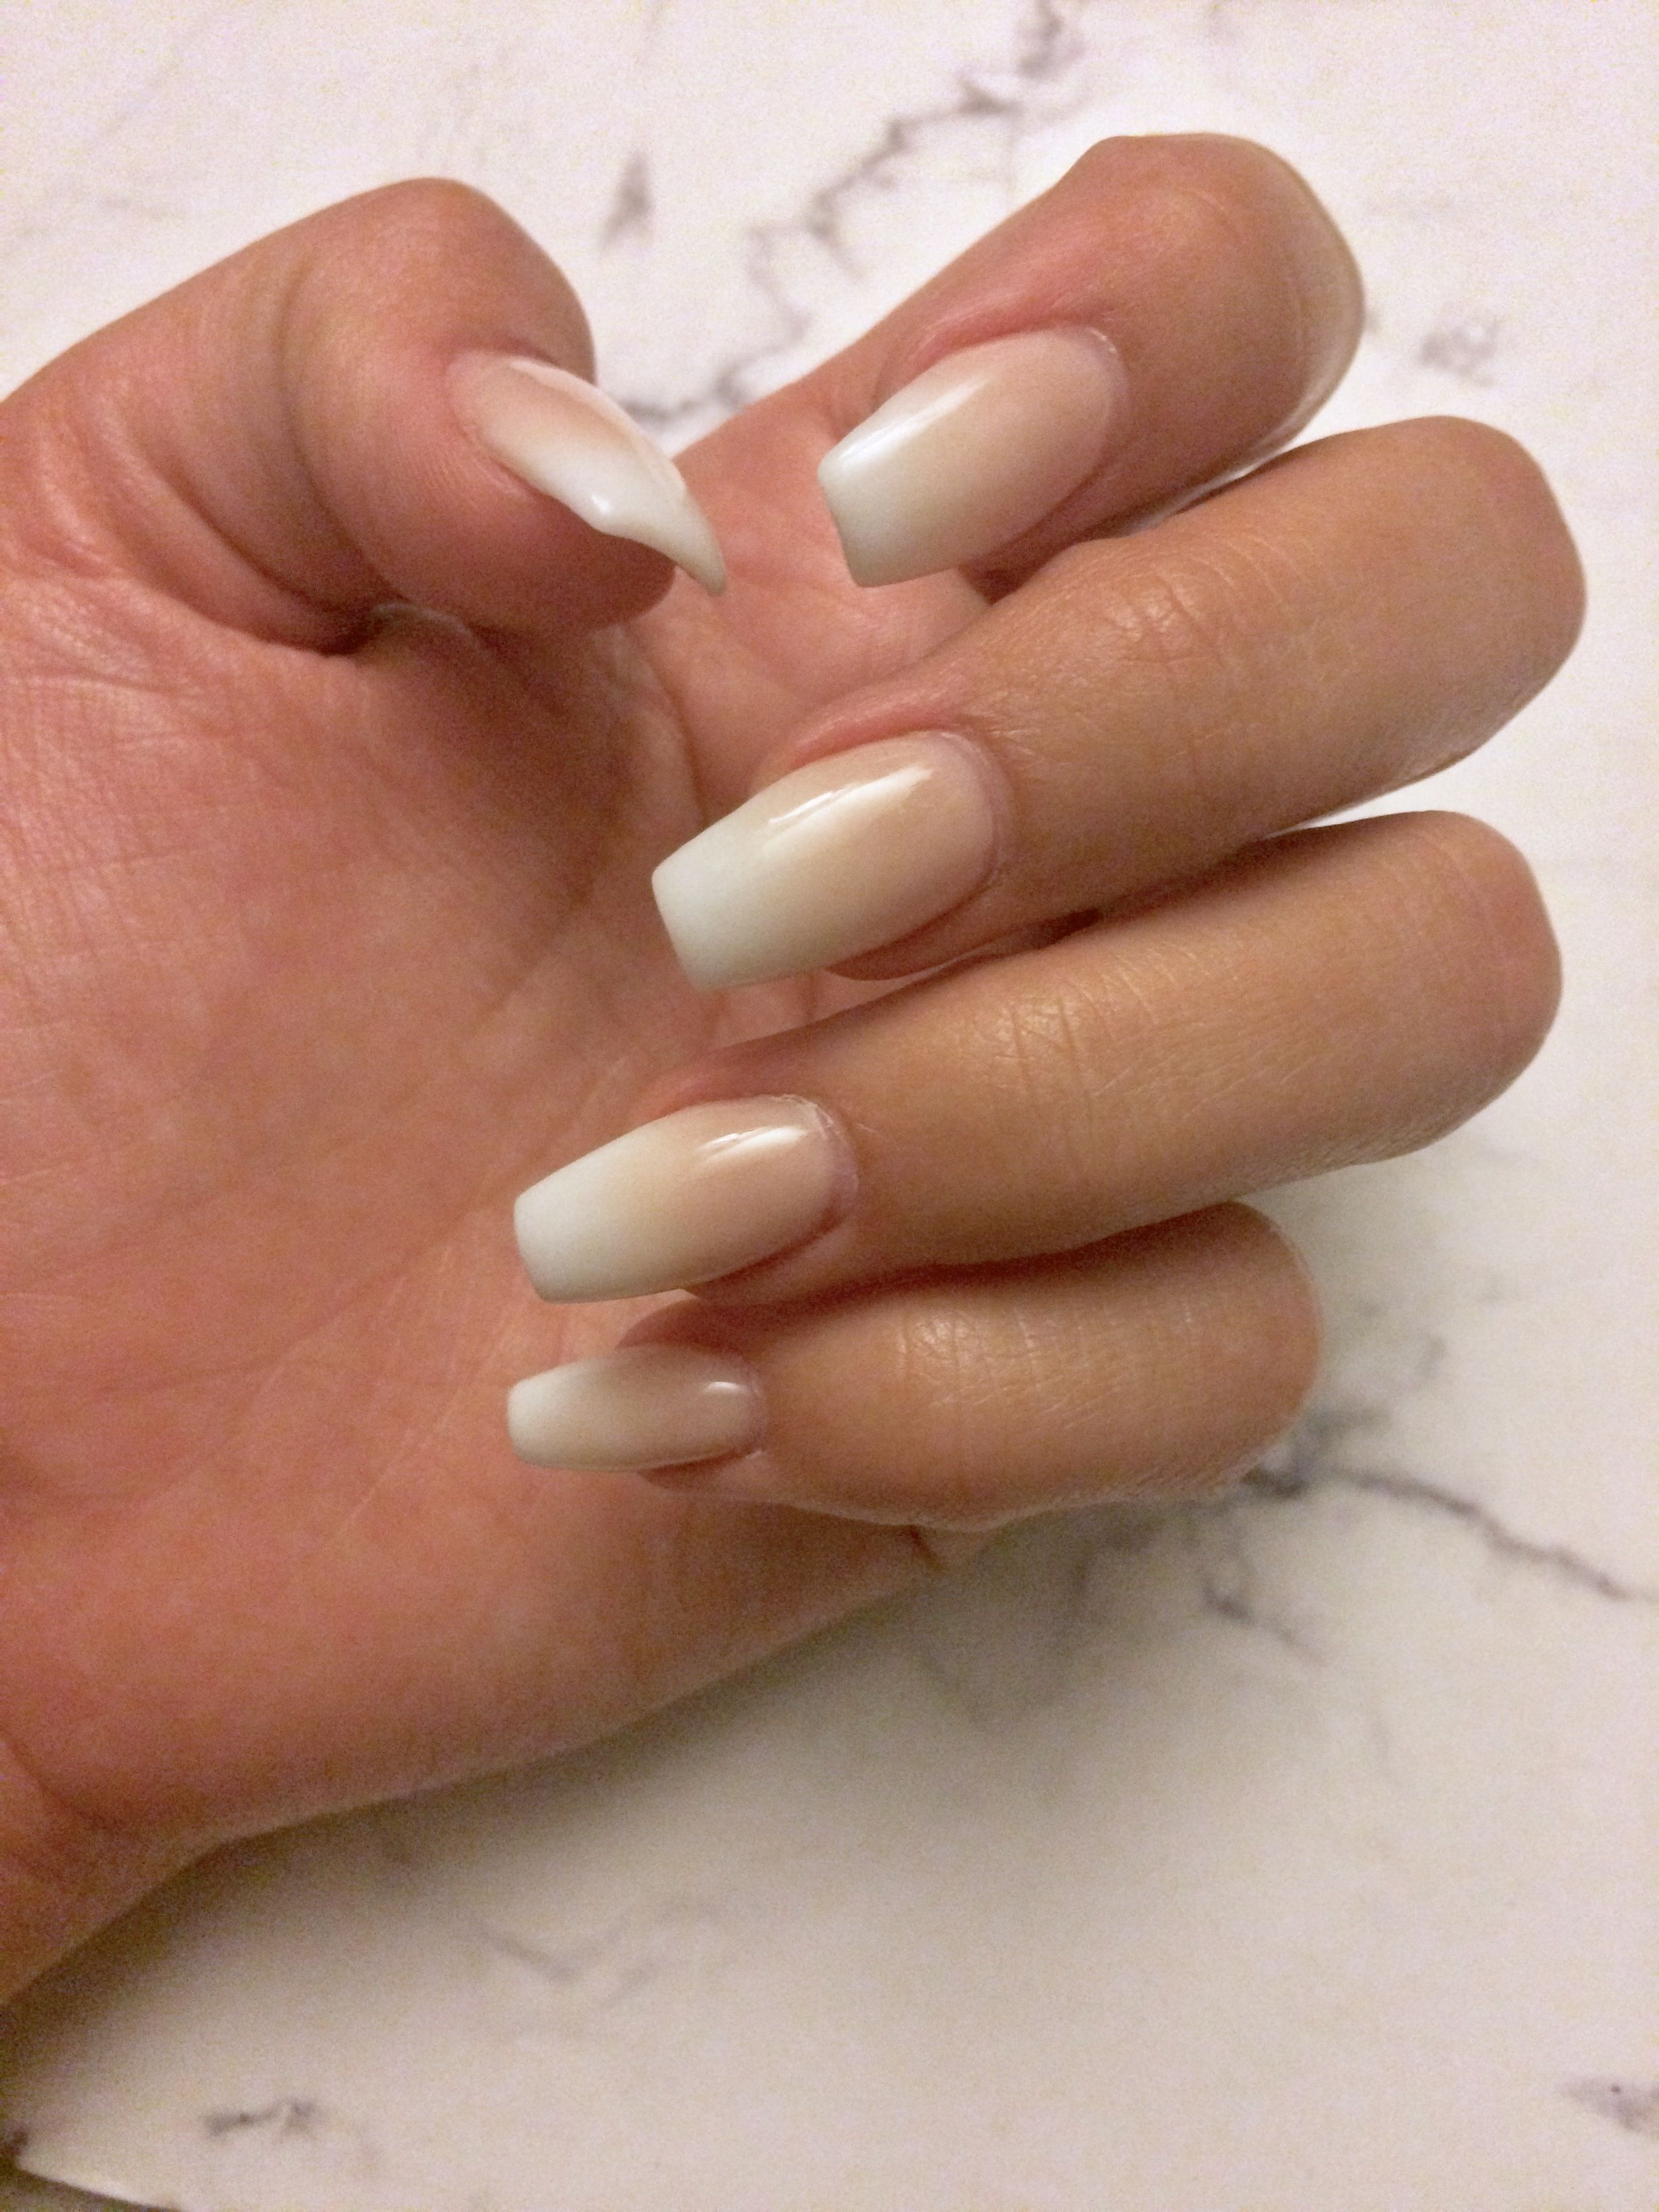 Delicious Nail Designs: Ombré French Tip, Tapered Square, Light Neutral Color